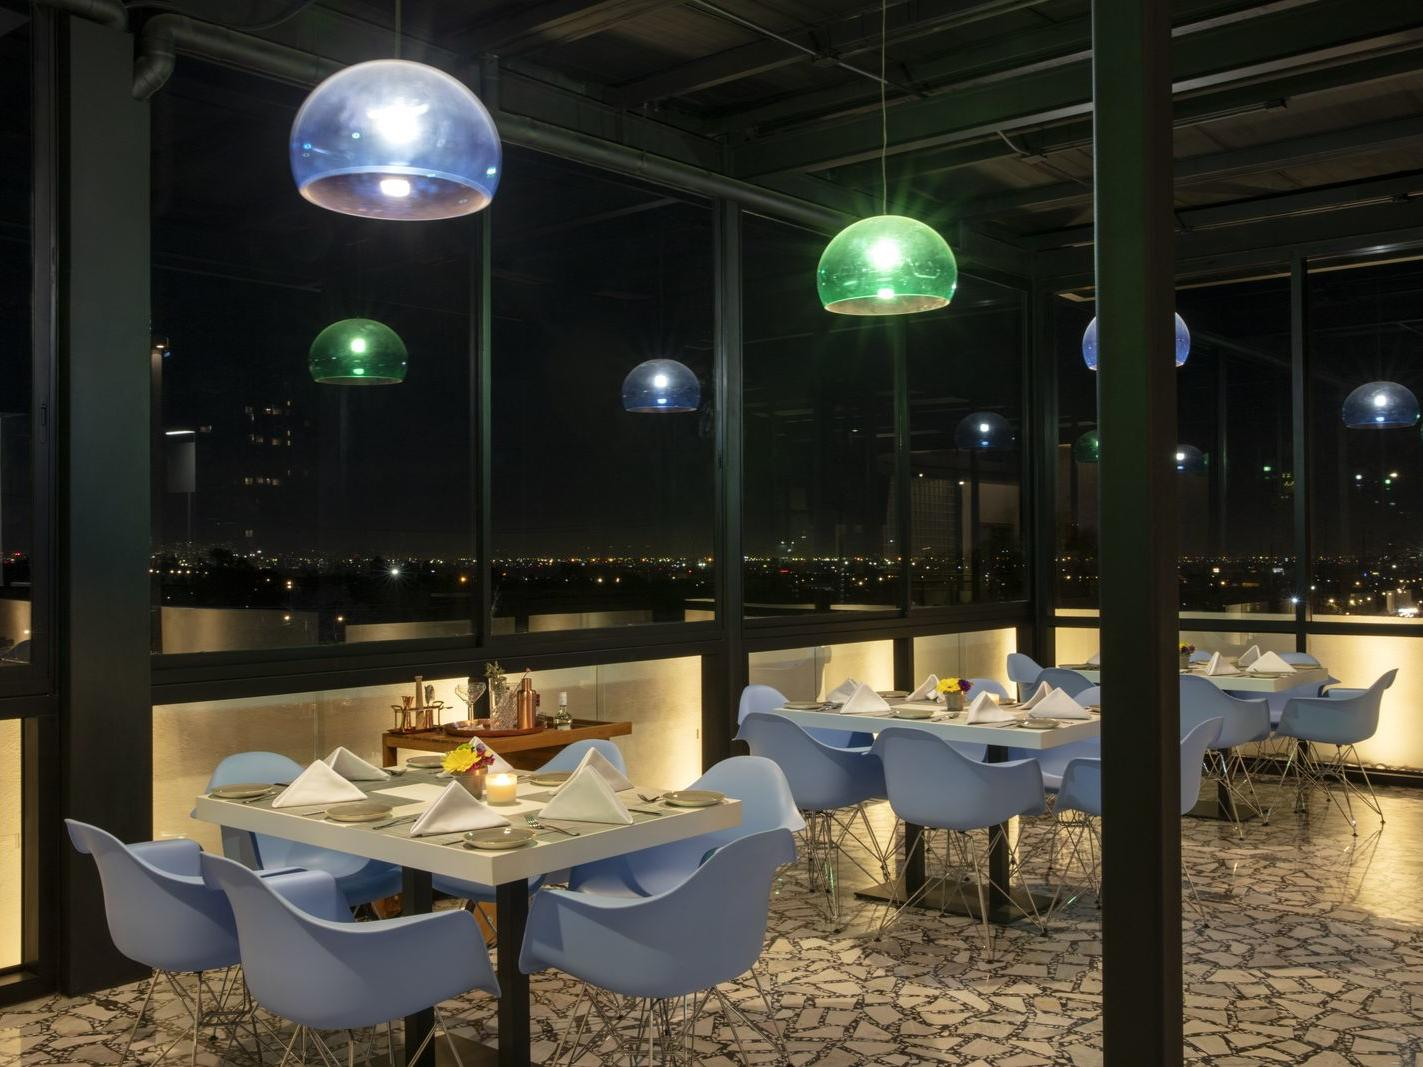 Modern tables and chairs at the roof garden restaurant